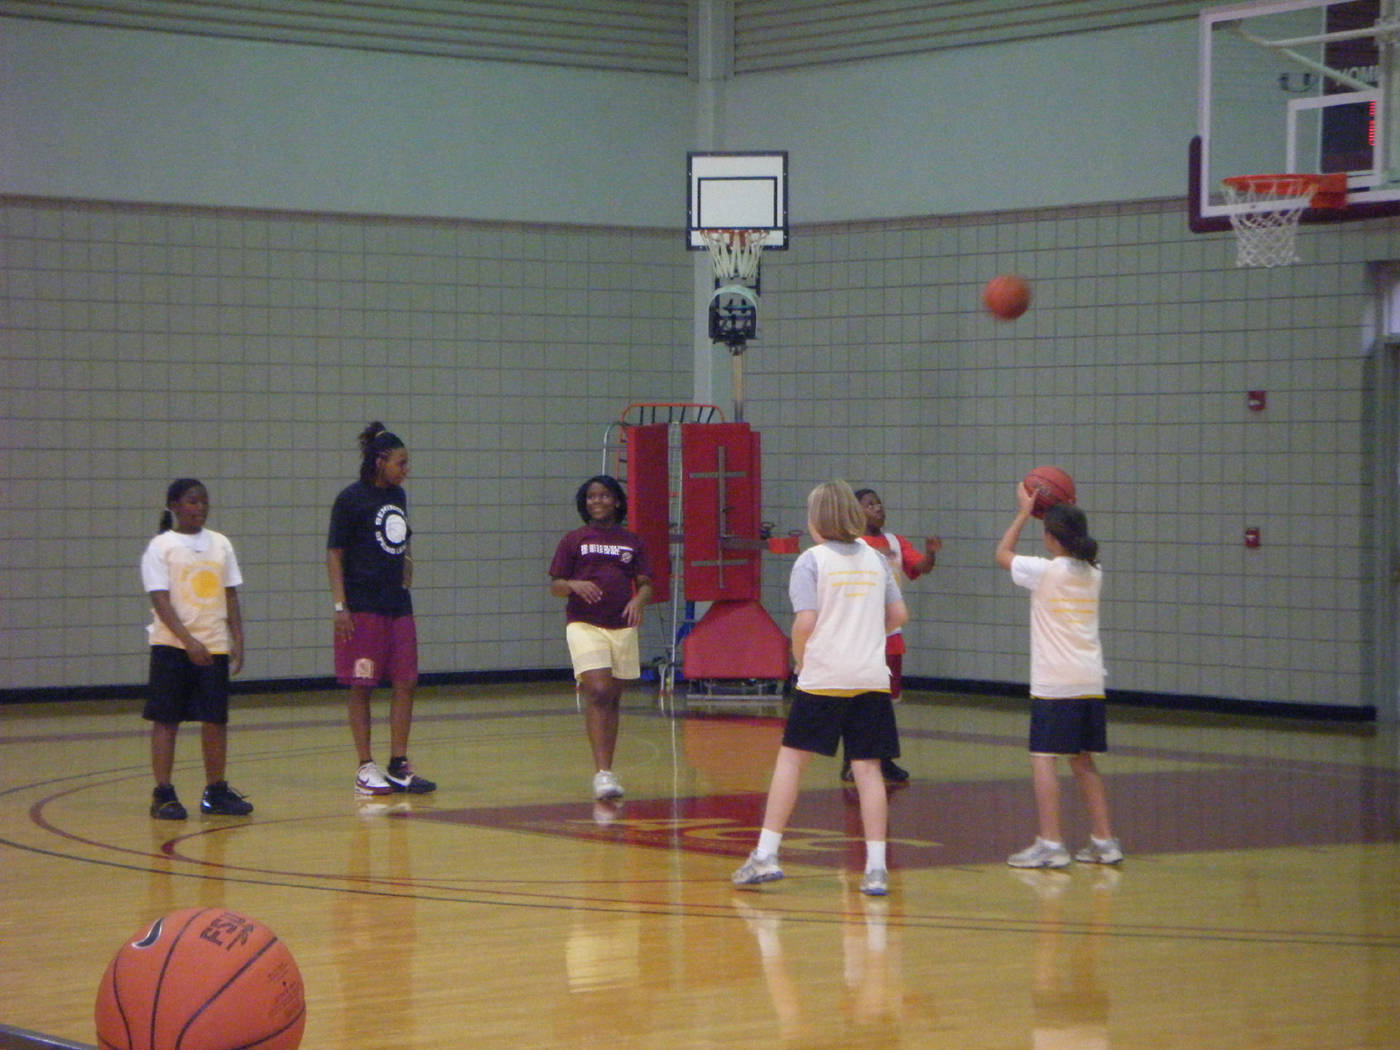 Tanae Davis-Cain helping the girls make an correct overhead pass.